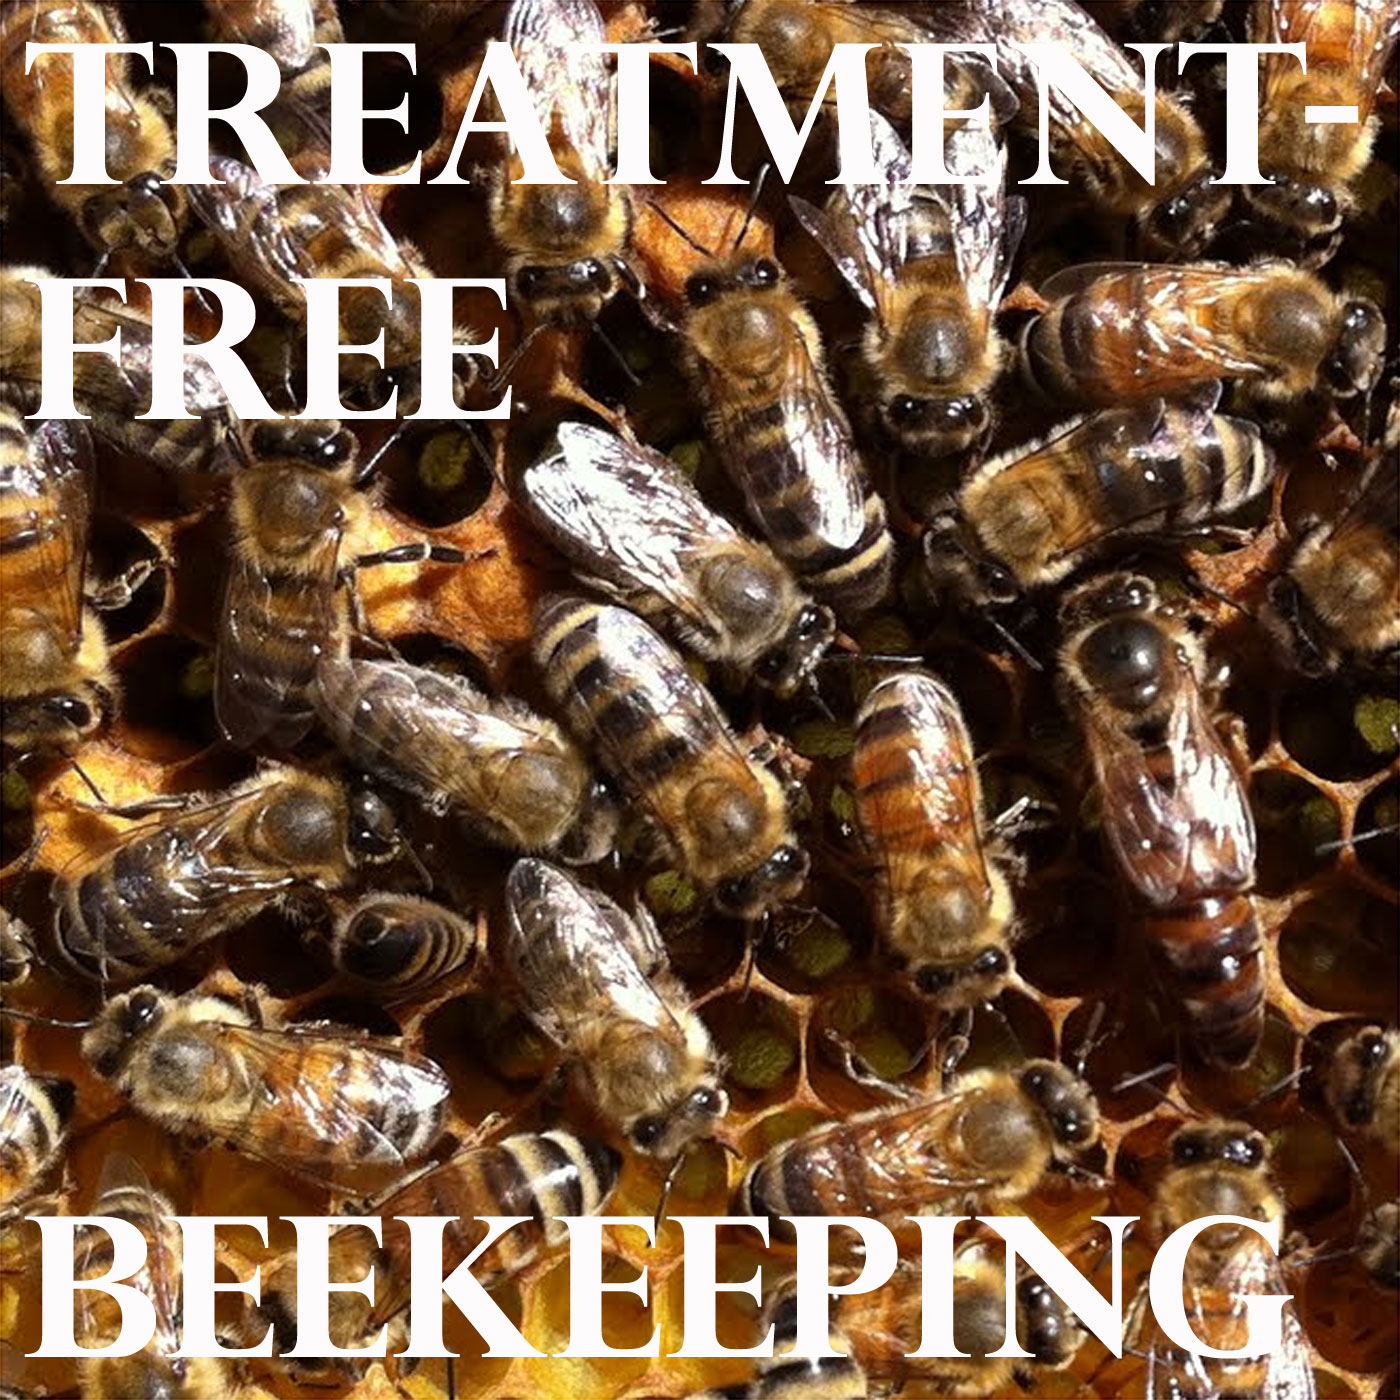 Treatment-Free Beekeeping Podcast - Episode 30 - Roger in Los Altos